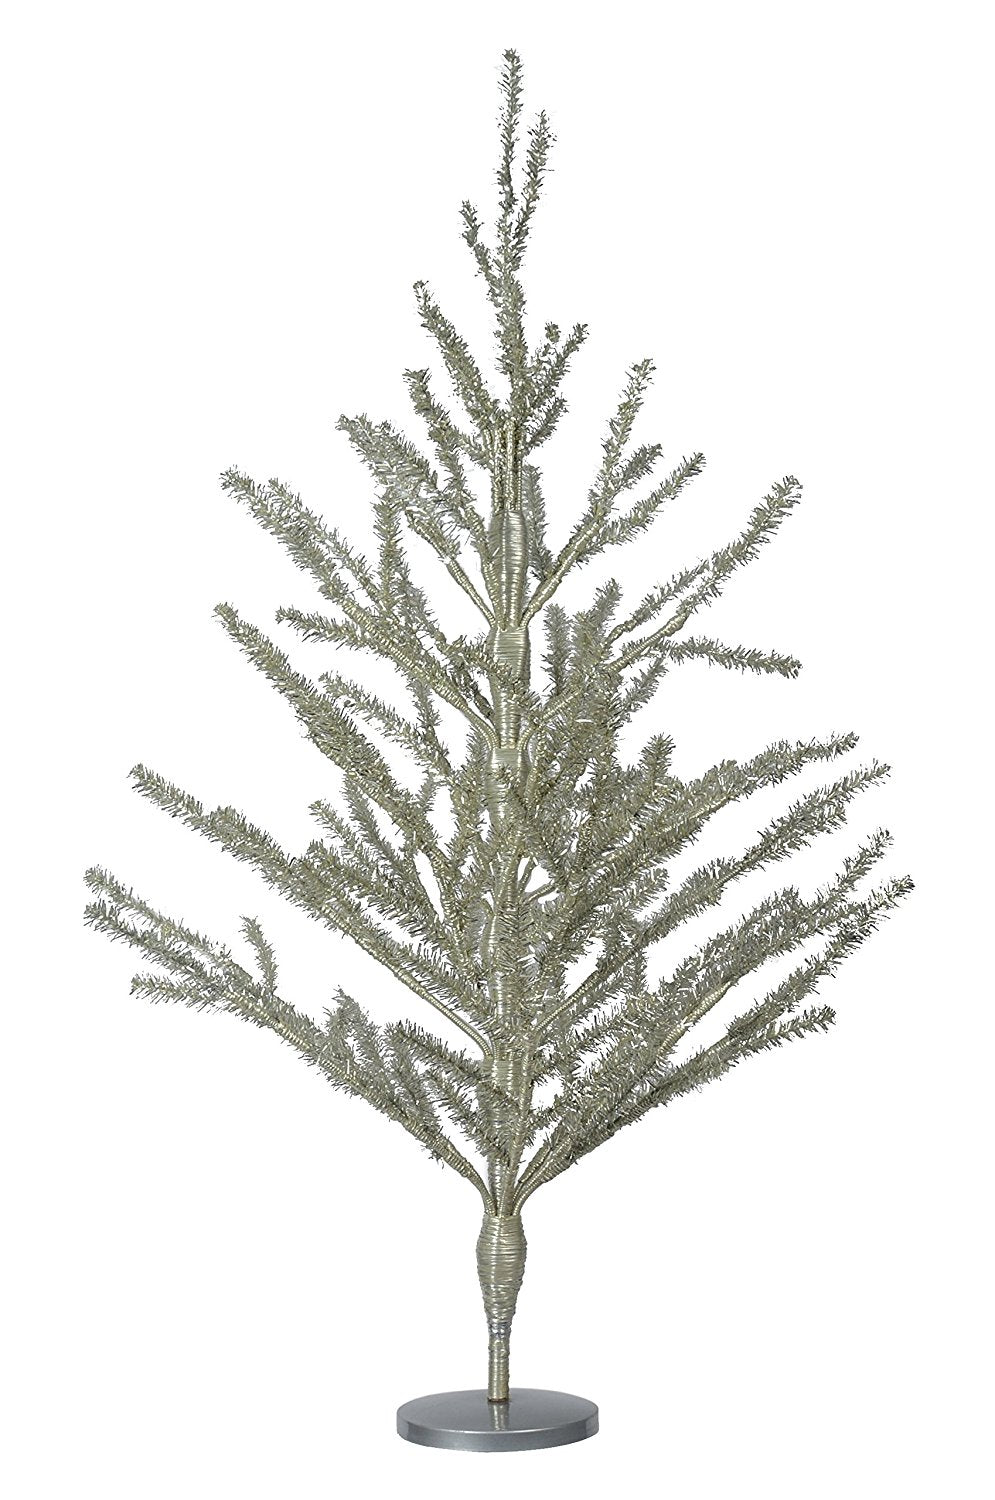 30 inch high silver tinsel christmas tree - Silver Tinsel Christmas Tree